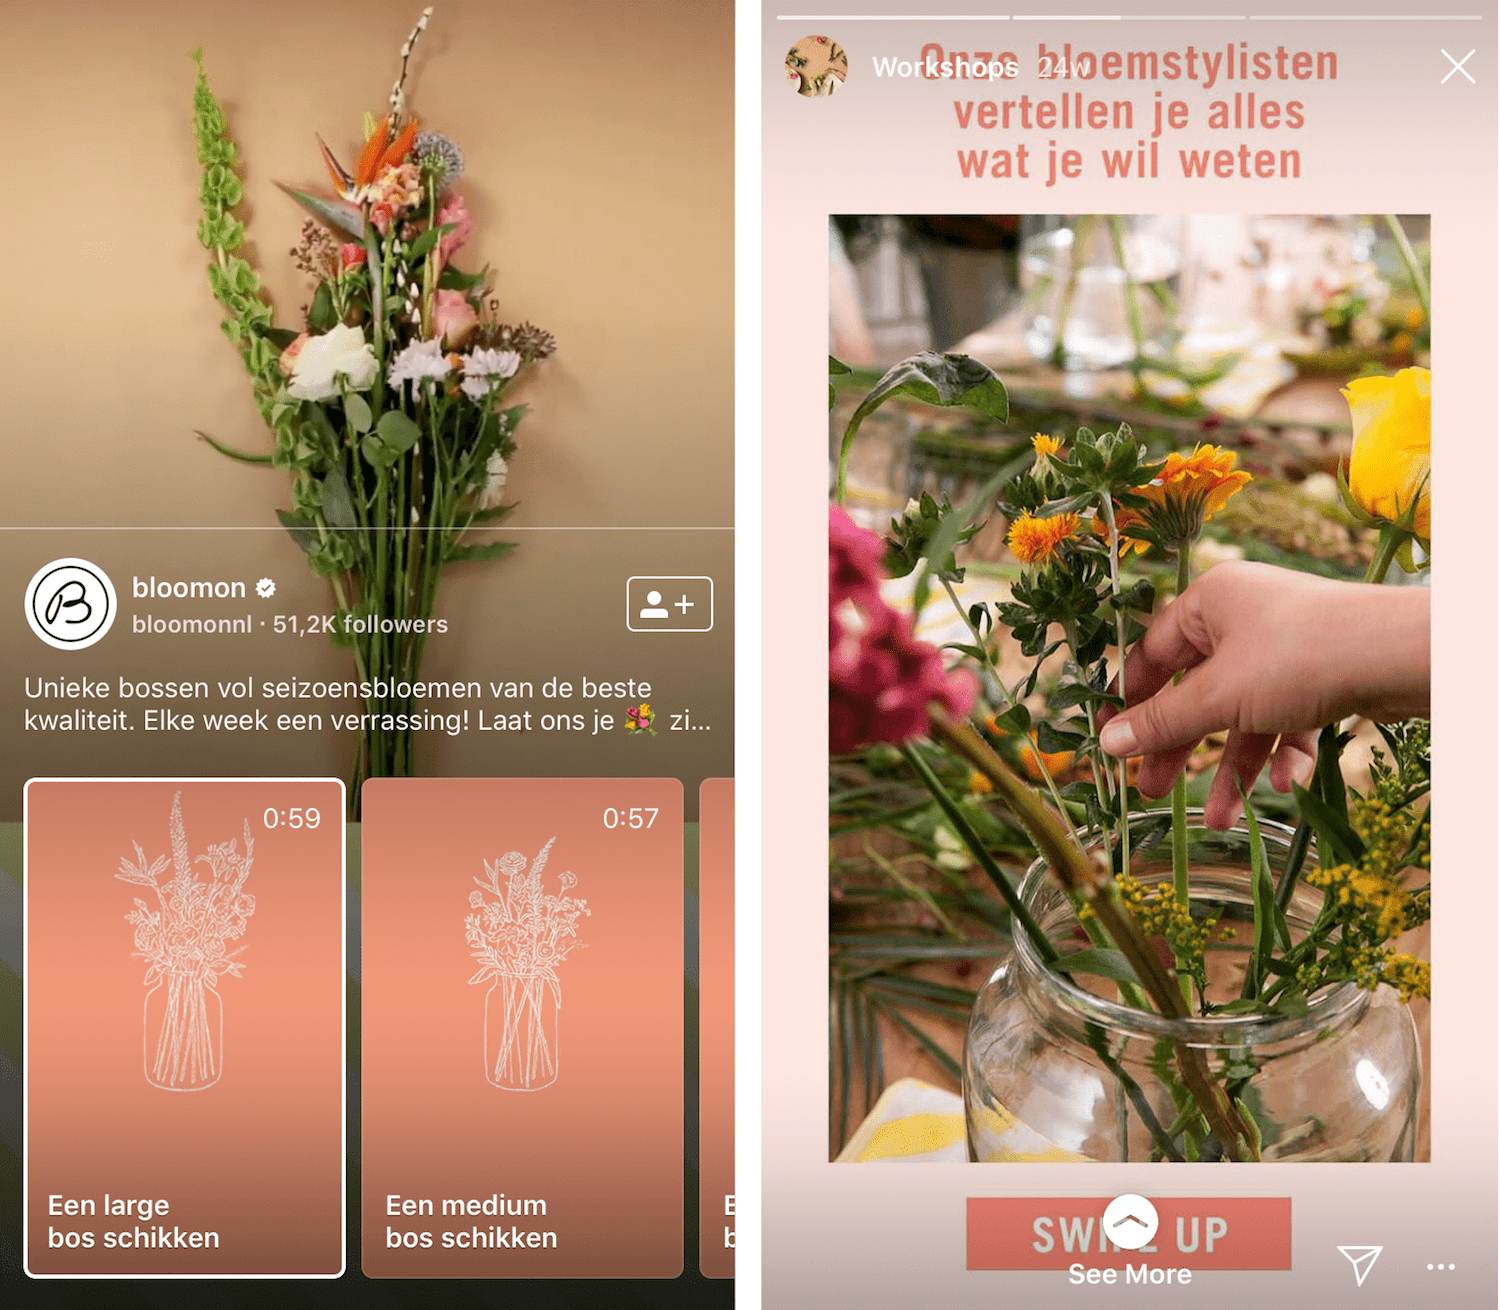 Integrate IGTV and Stories in your Instagram marketing strategy, like Bloomon!